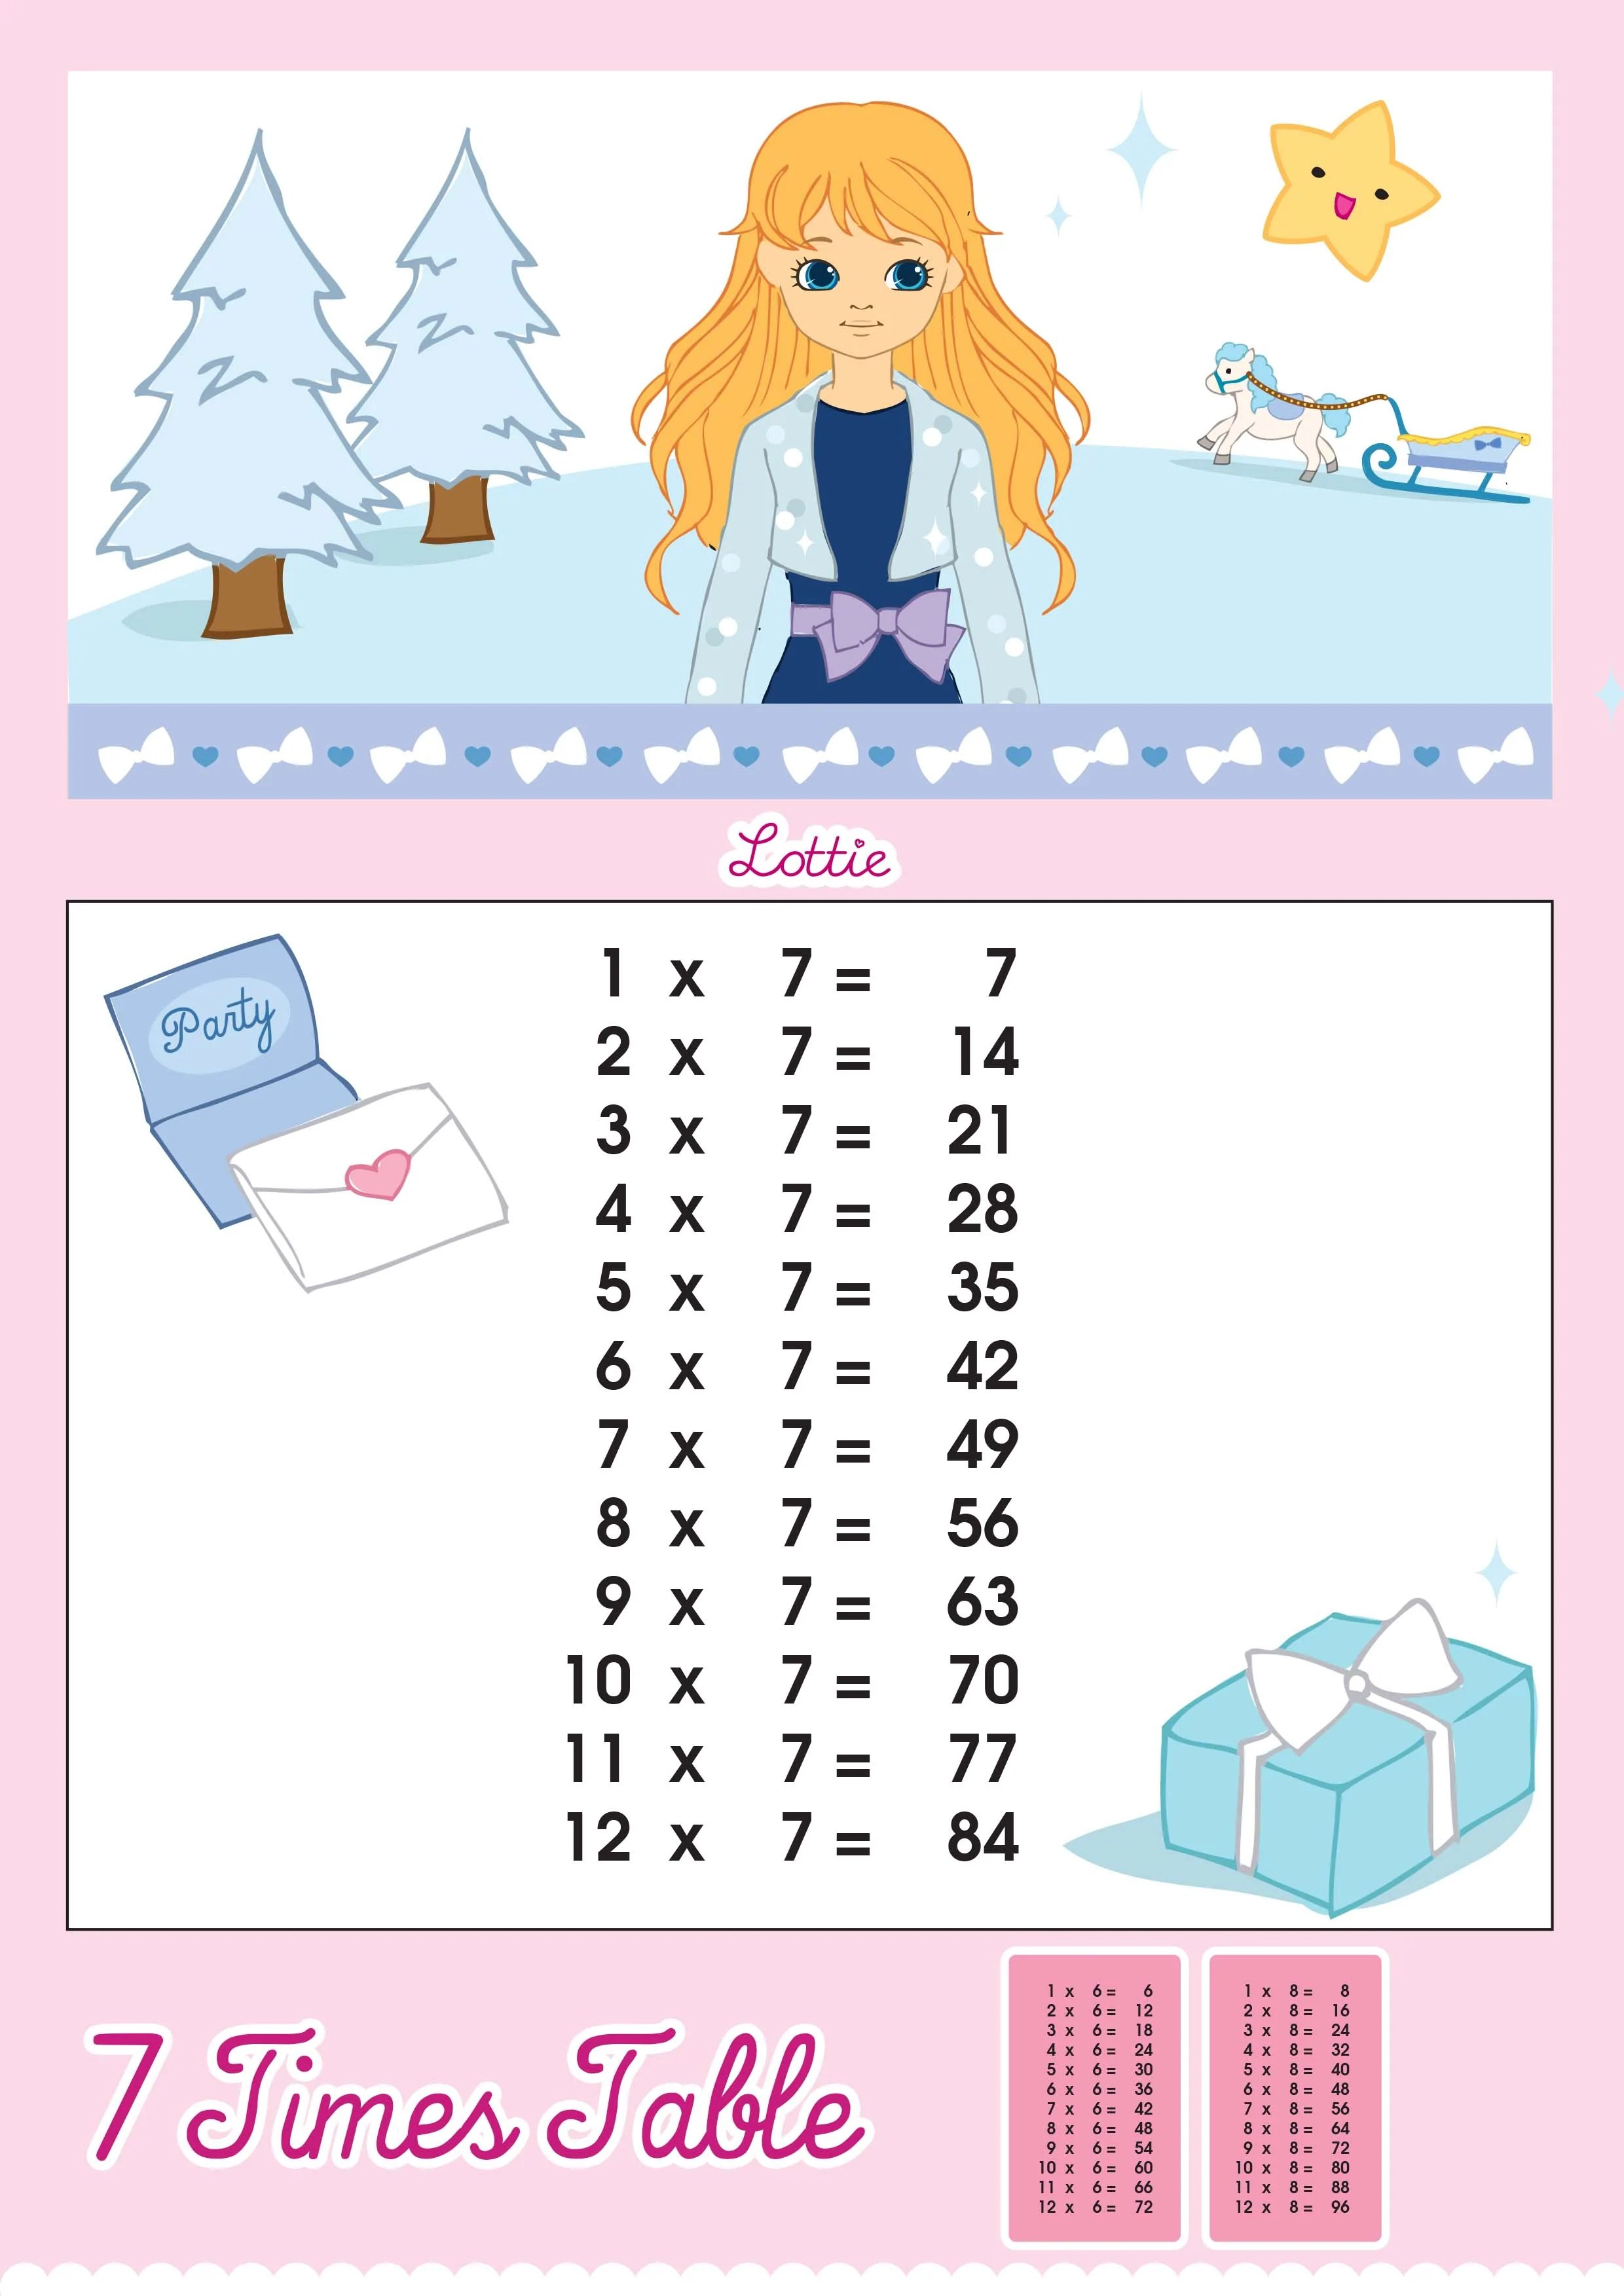 7 Times Table Printable Chart Lottie Dolls